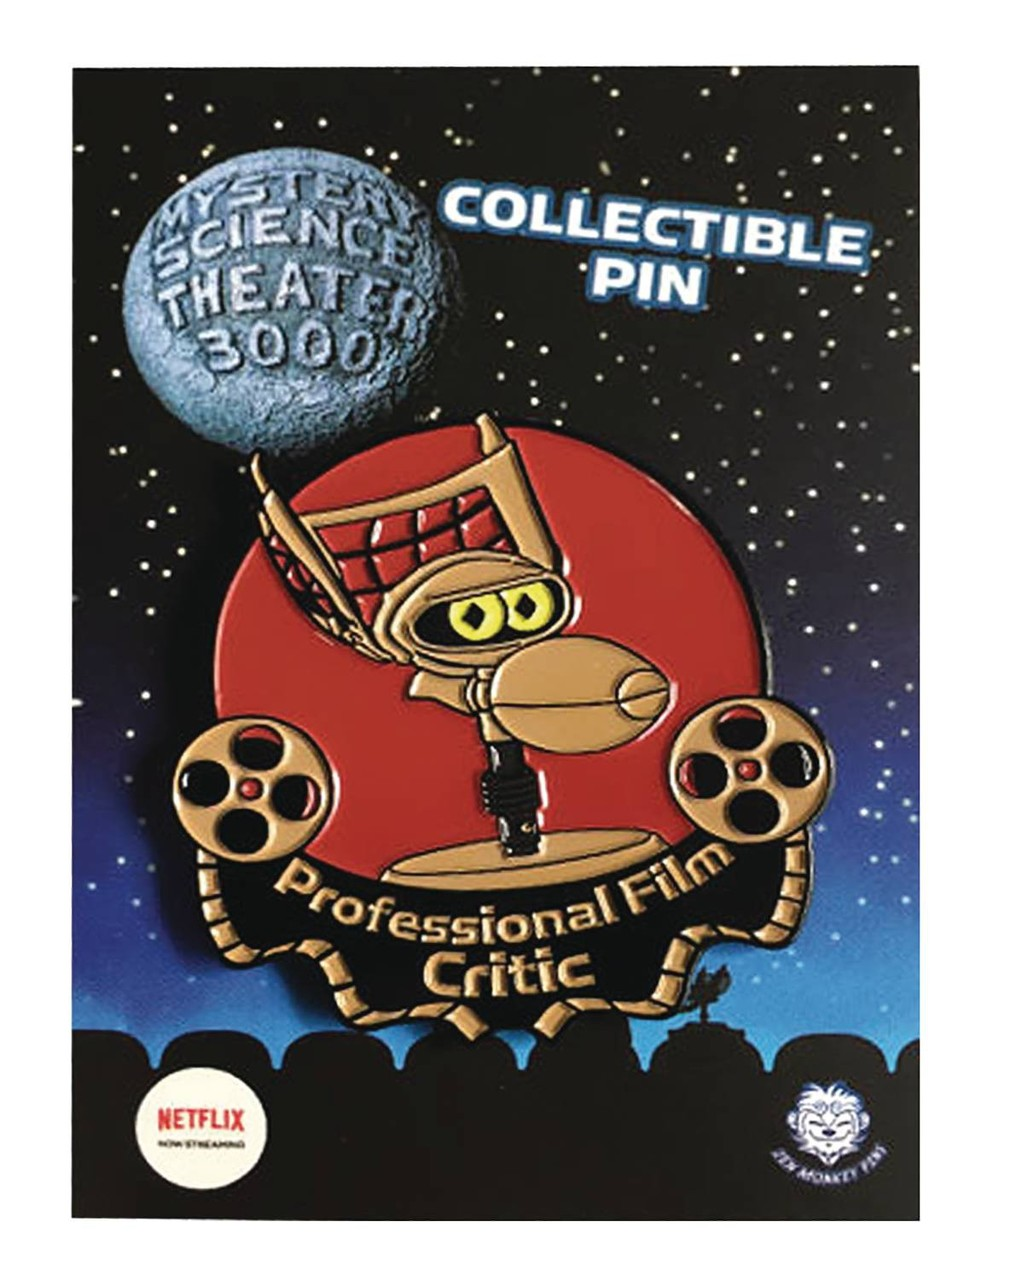 Mystery Science Theater 3000 Crow T Robot 1 5 Film Critic Pin Zen